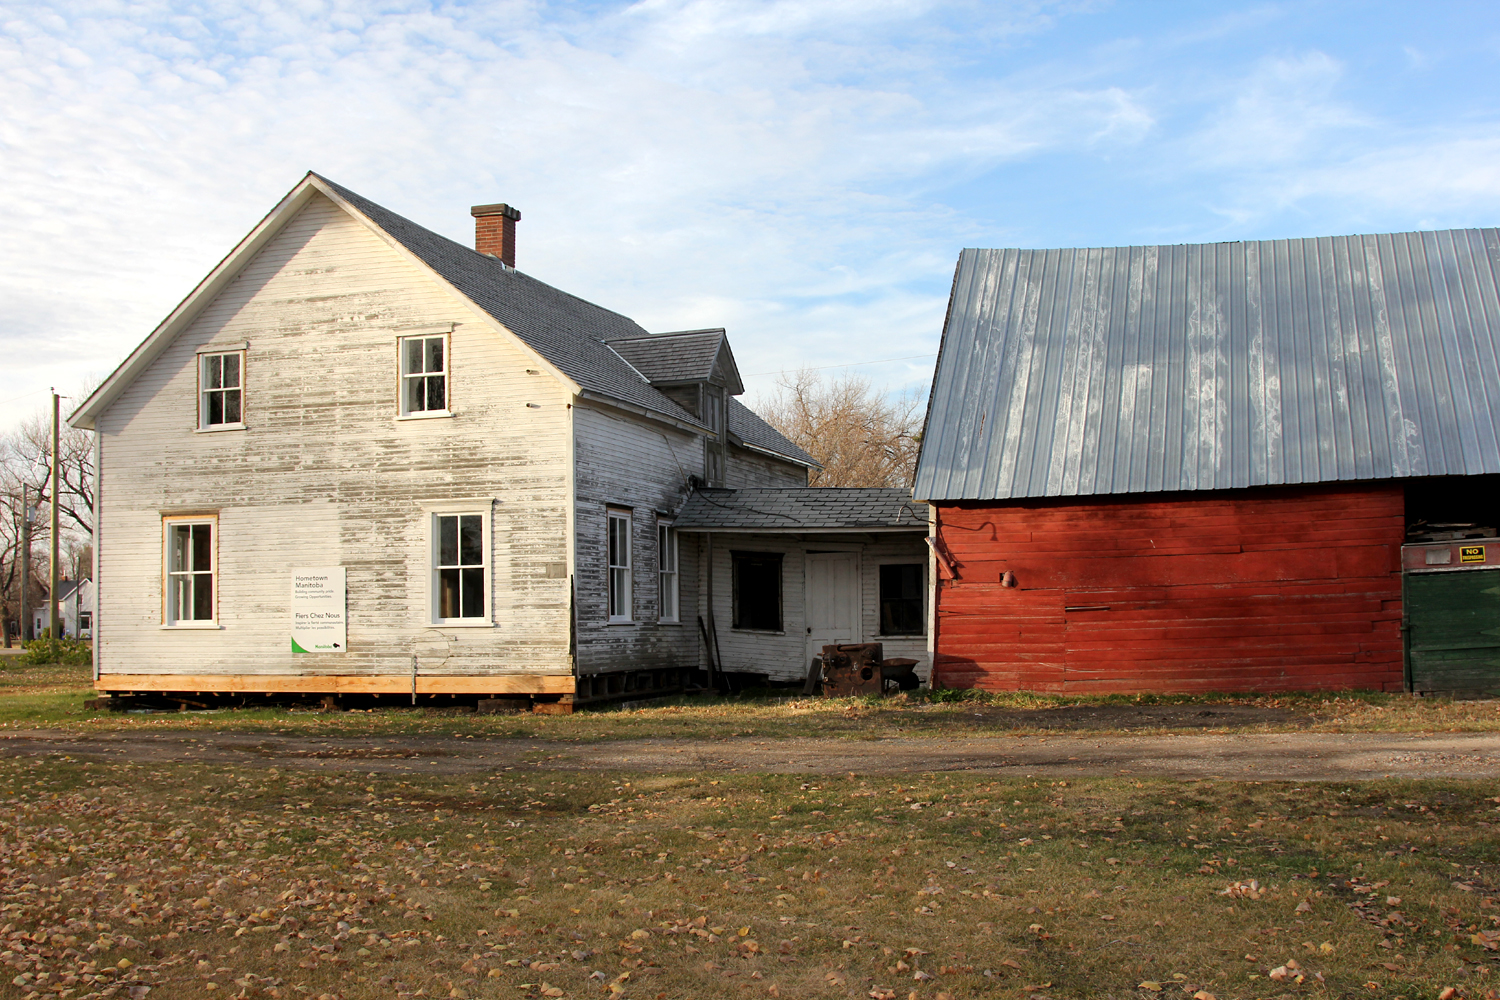 The Storied Barn